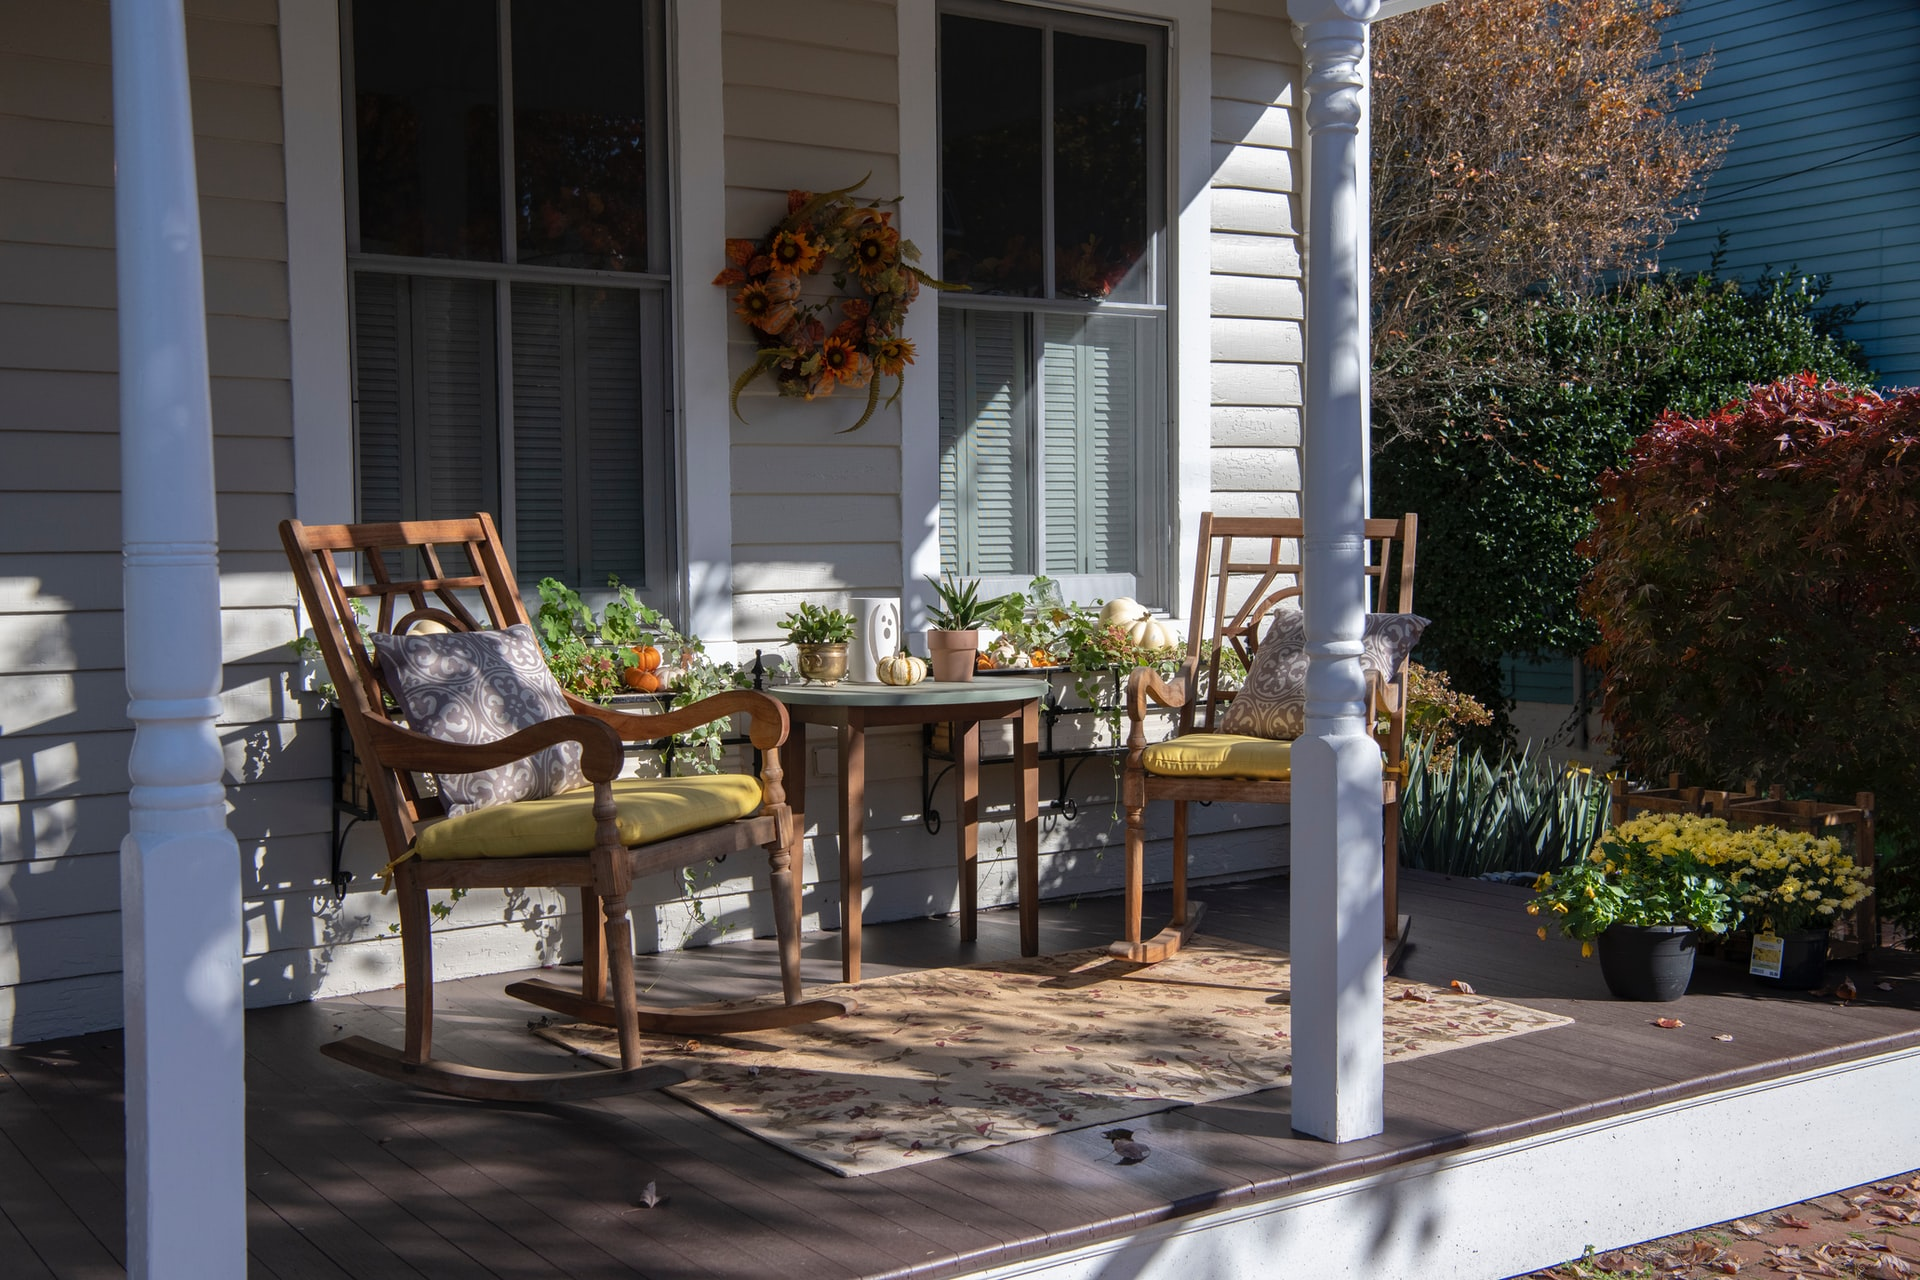 wooden patio furniture on front porch